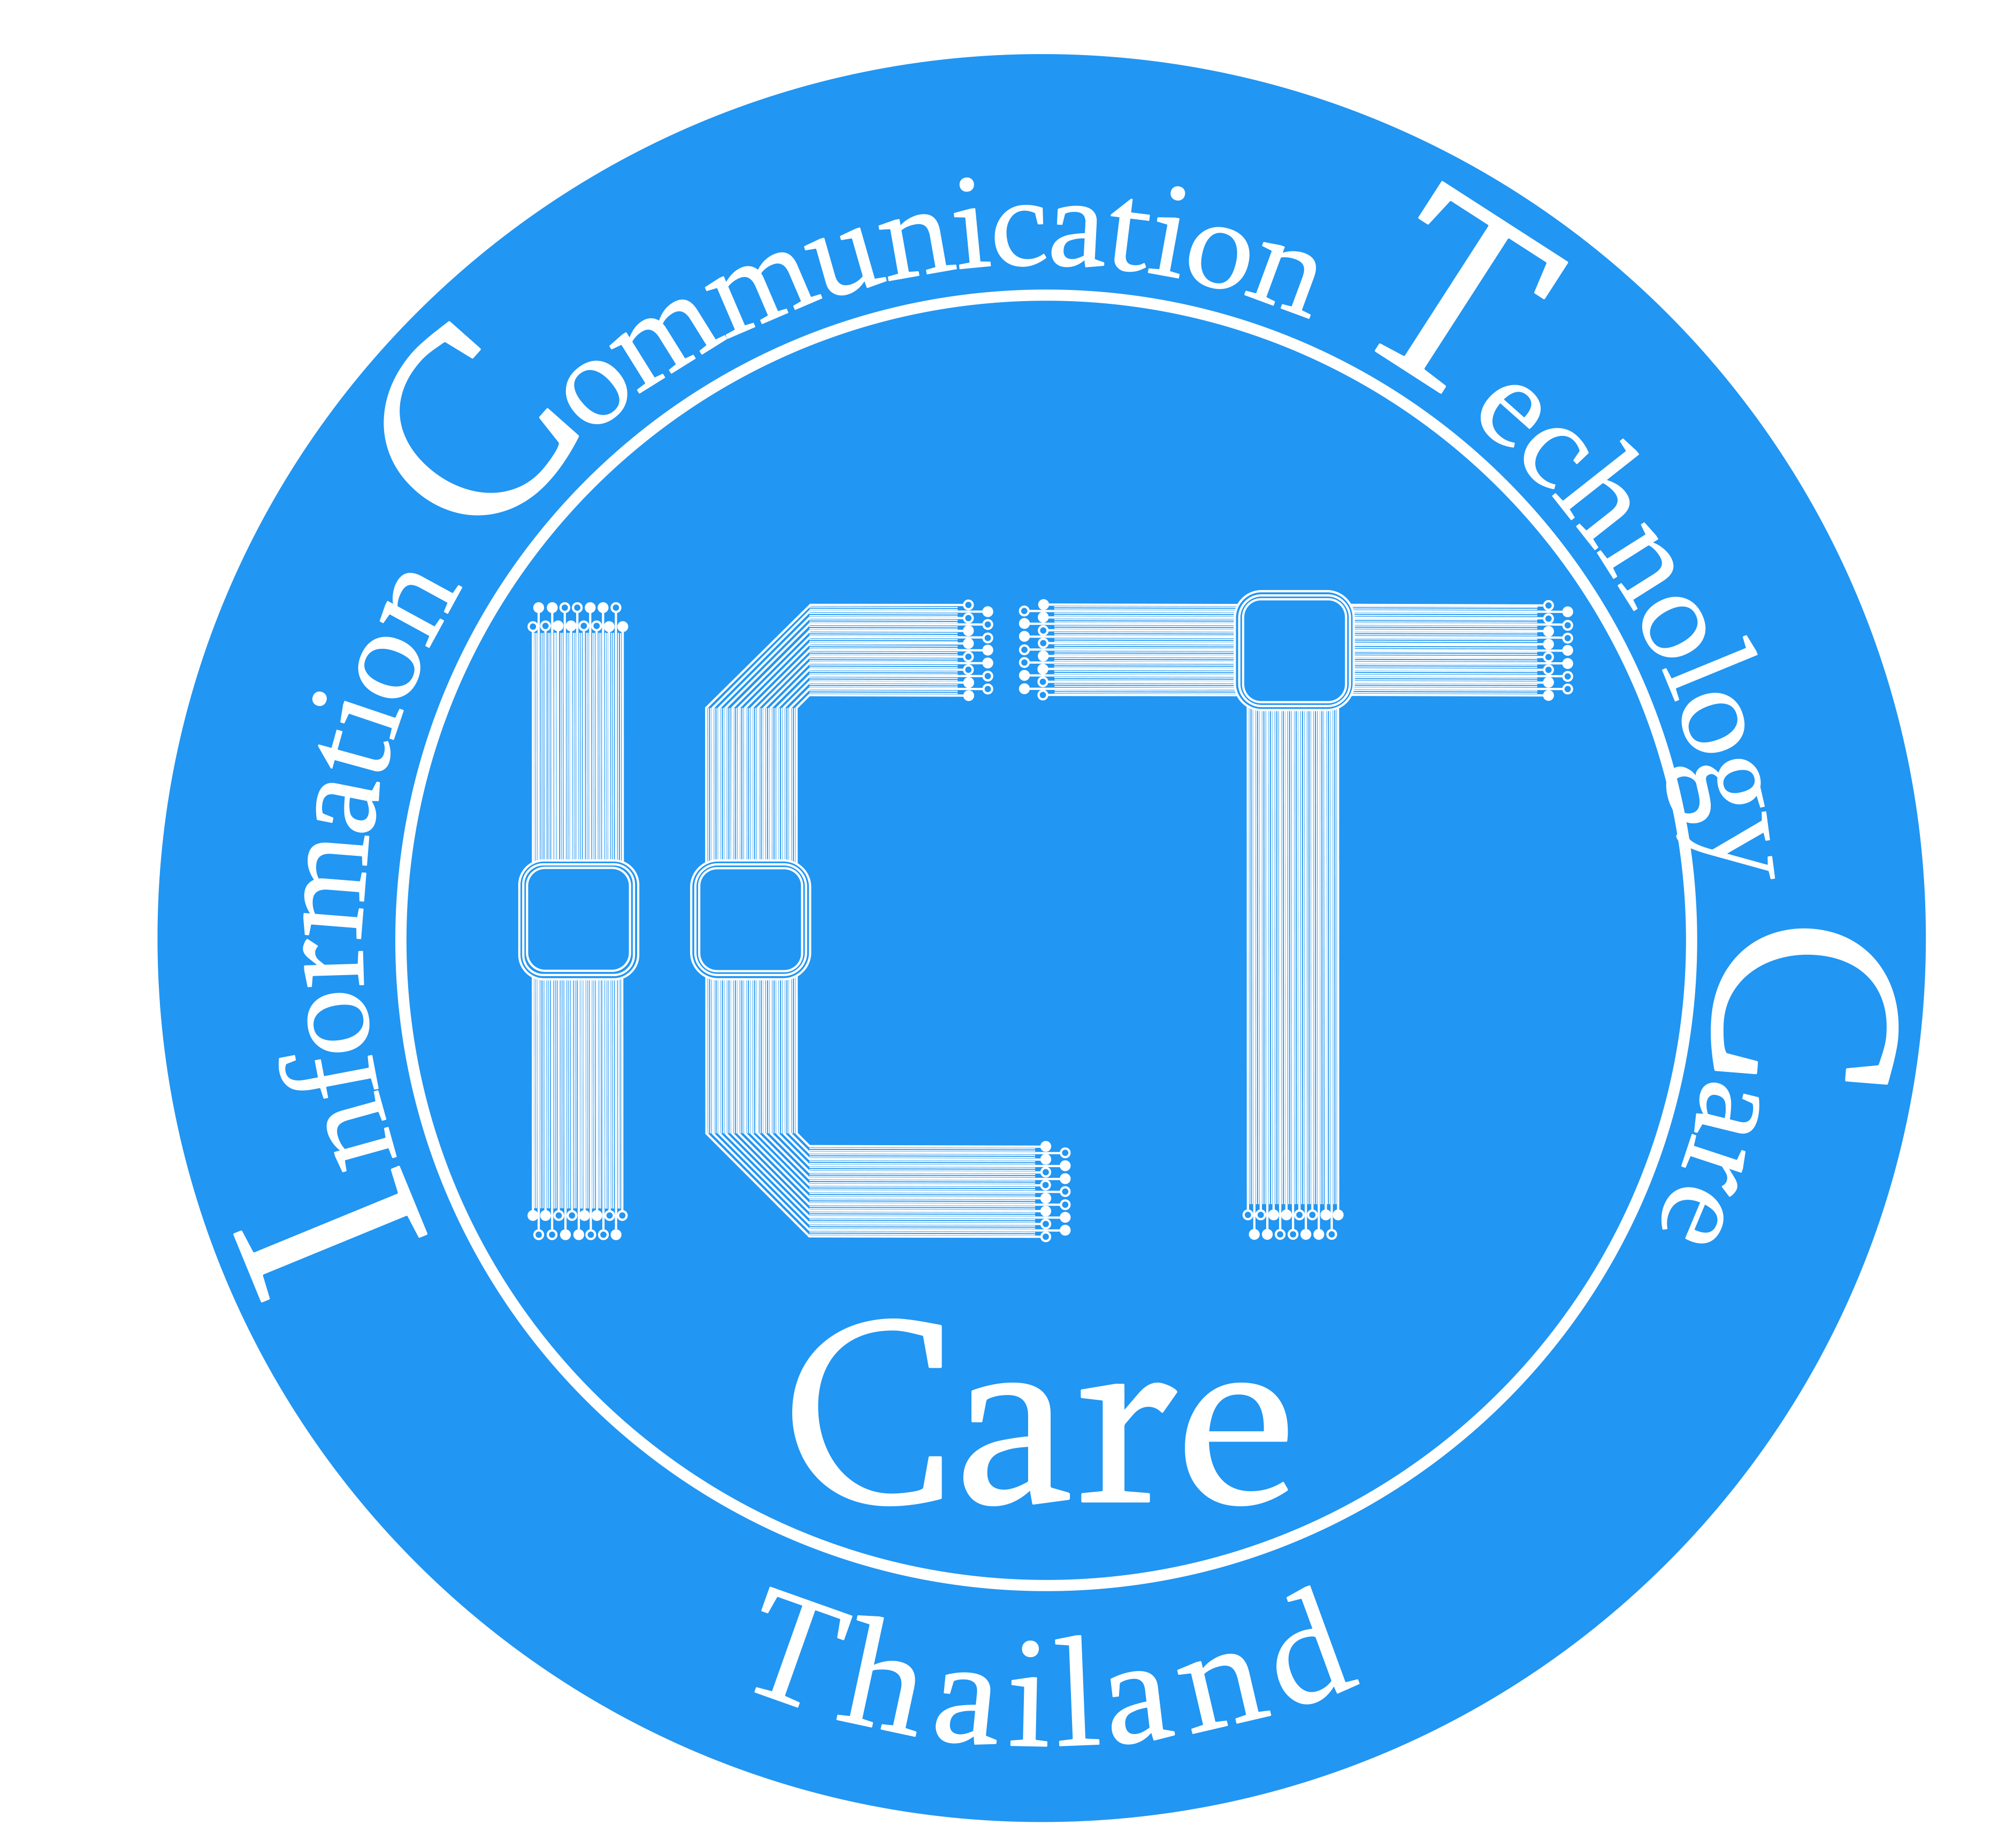 ICT CARE Thailand